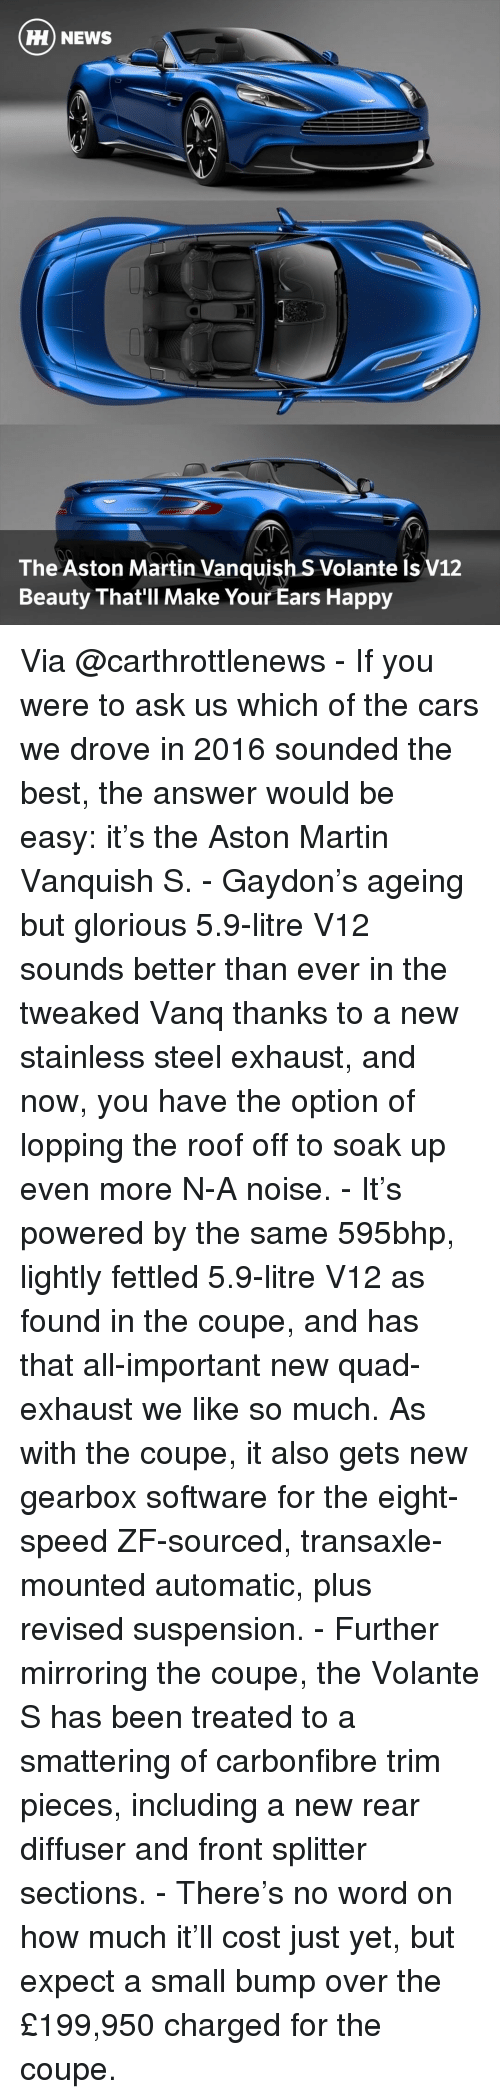 v12: HH NEWS  The Aston Martin Vanquish S Volante Is V12  Beauty That'll Make Your Ears Happy Via @carthrottlenews - If you were to ask us which of the cars we drove in 2016 sounded the best, the answer would be easy: it's the Aston Martin Vanquish S. - Gaydon's ageing but glorious 5.9-litre V12 sounds better than ever in the tweaked Vanq thanks to a new stainless steel exhaust, and now, you have the option of lopping the roof off to soak up even more N-A noise. - It's powered by the same 595bhp, lightly fettled 5.9-litre V12 as found in the coupe, and has that all-important new quad-exhaust we like so much. As with the coupe, it also gets new gearbox software for the eight-speed ZF-sourced, transaxle-mounted automatic, plus revised suspension. - Further mirroring the coupe, the Volante S has been treated to a smattering of carbonfibre trim pieces, including a new rear diffuser and front splitter sections. - There's no word on how much it'll cost just yet, but expect a small bump over the £199,950 charged for the coupe.